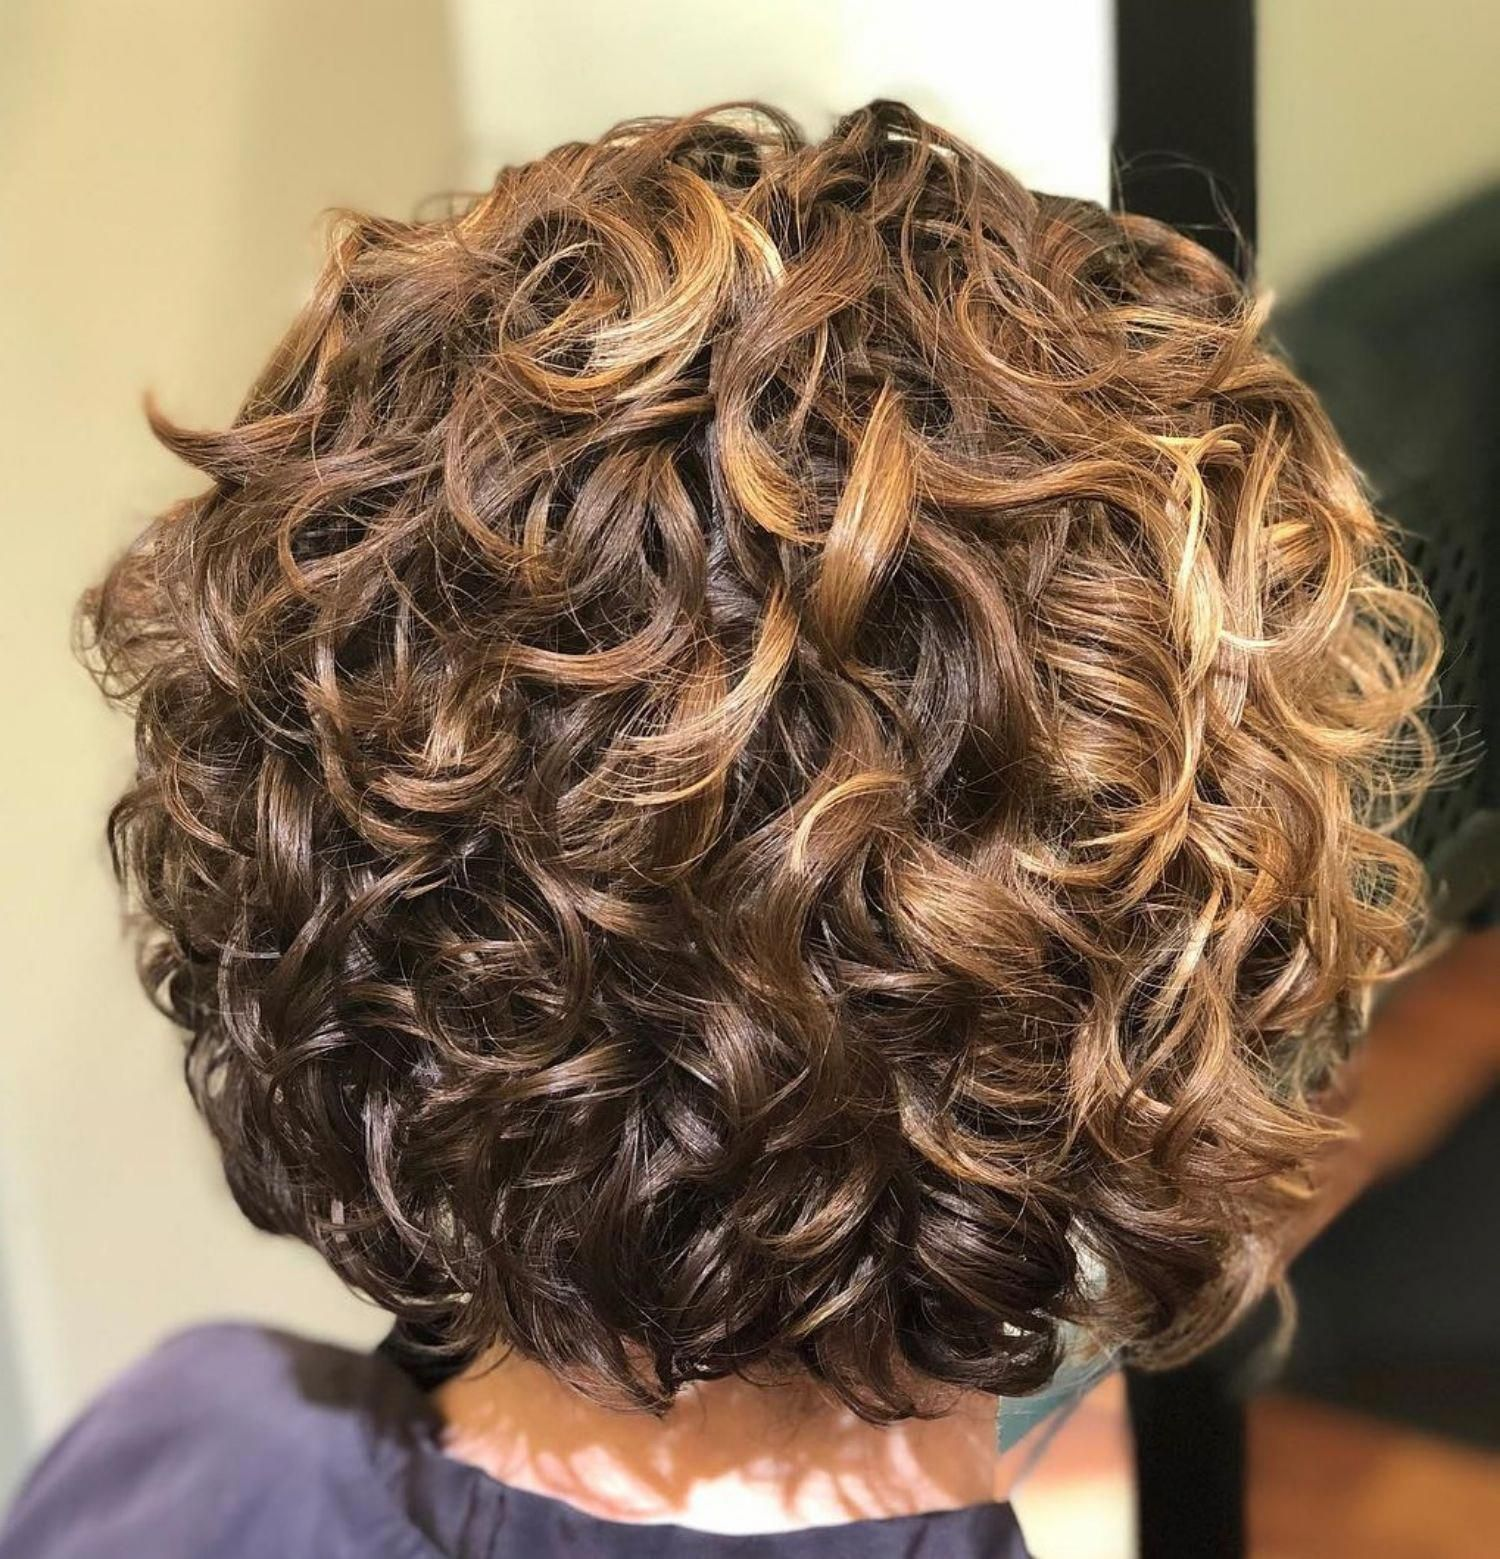 65 Different Versions of Curly Bob Hairstyle   Short natural curly hair, Curly hair styles ...